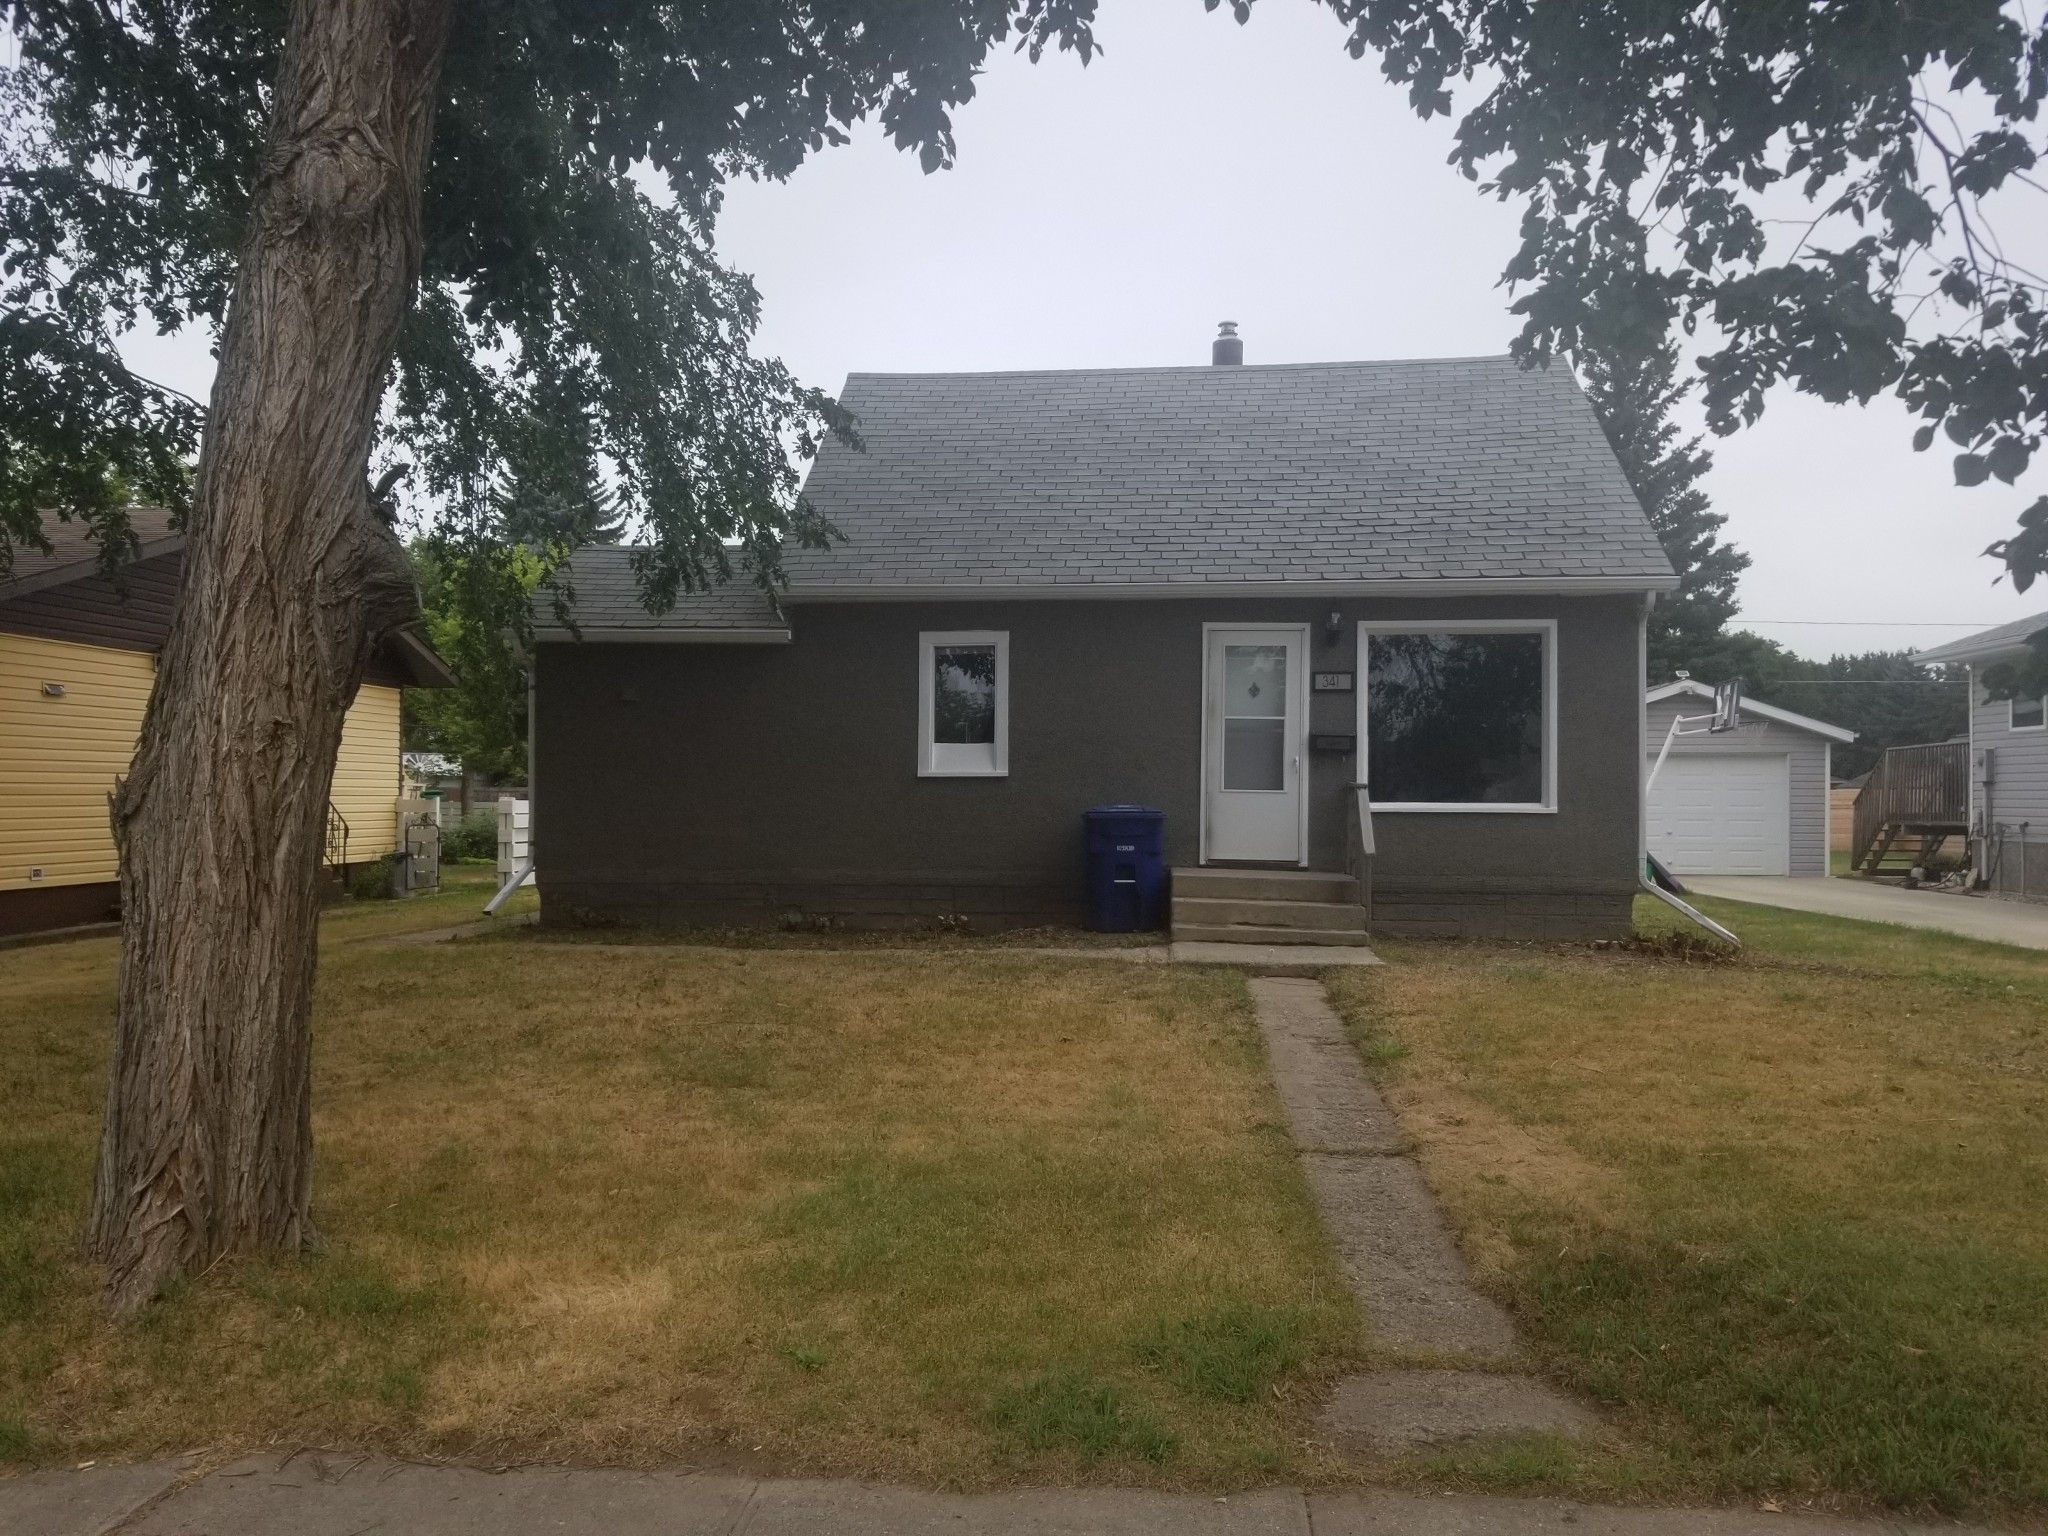 Main Photo: 341 2nd Avenue West in Unity: Detached Dwelling for rent